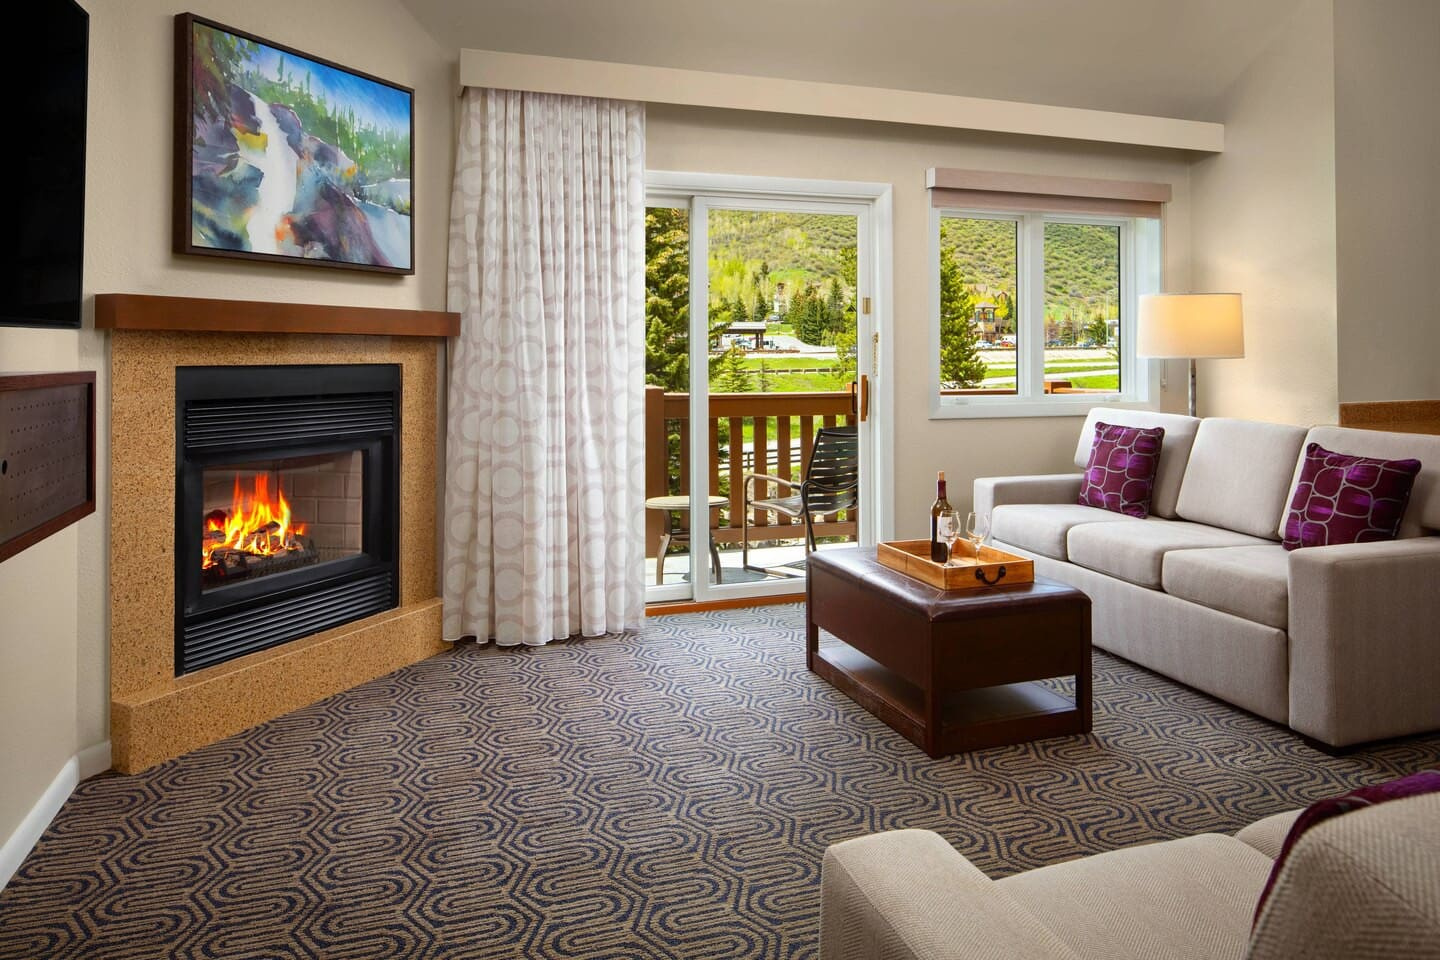 Living area with two queen size sofabeds, flat screen tv, gas fireplace, etc. (Marriott site states room images may not correspond to the actual room received)